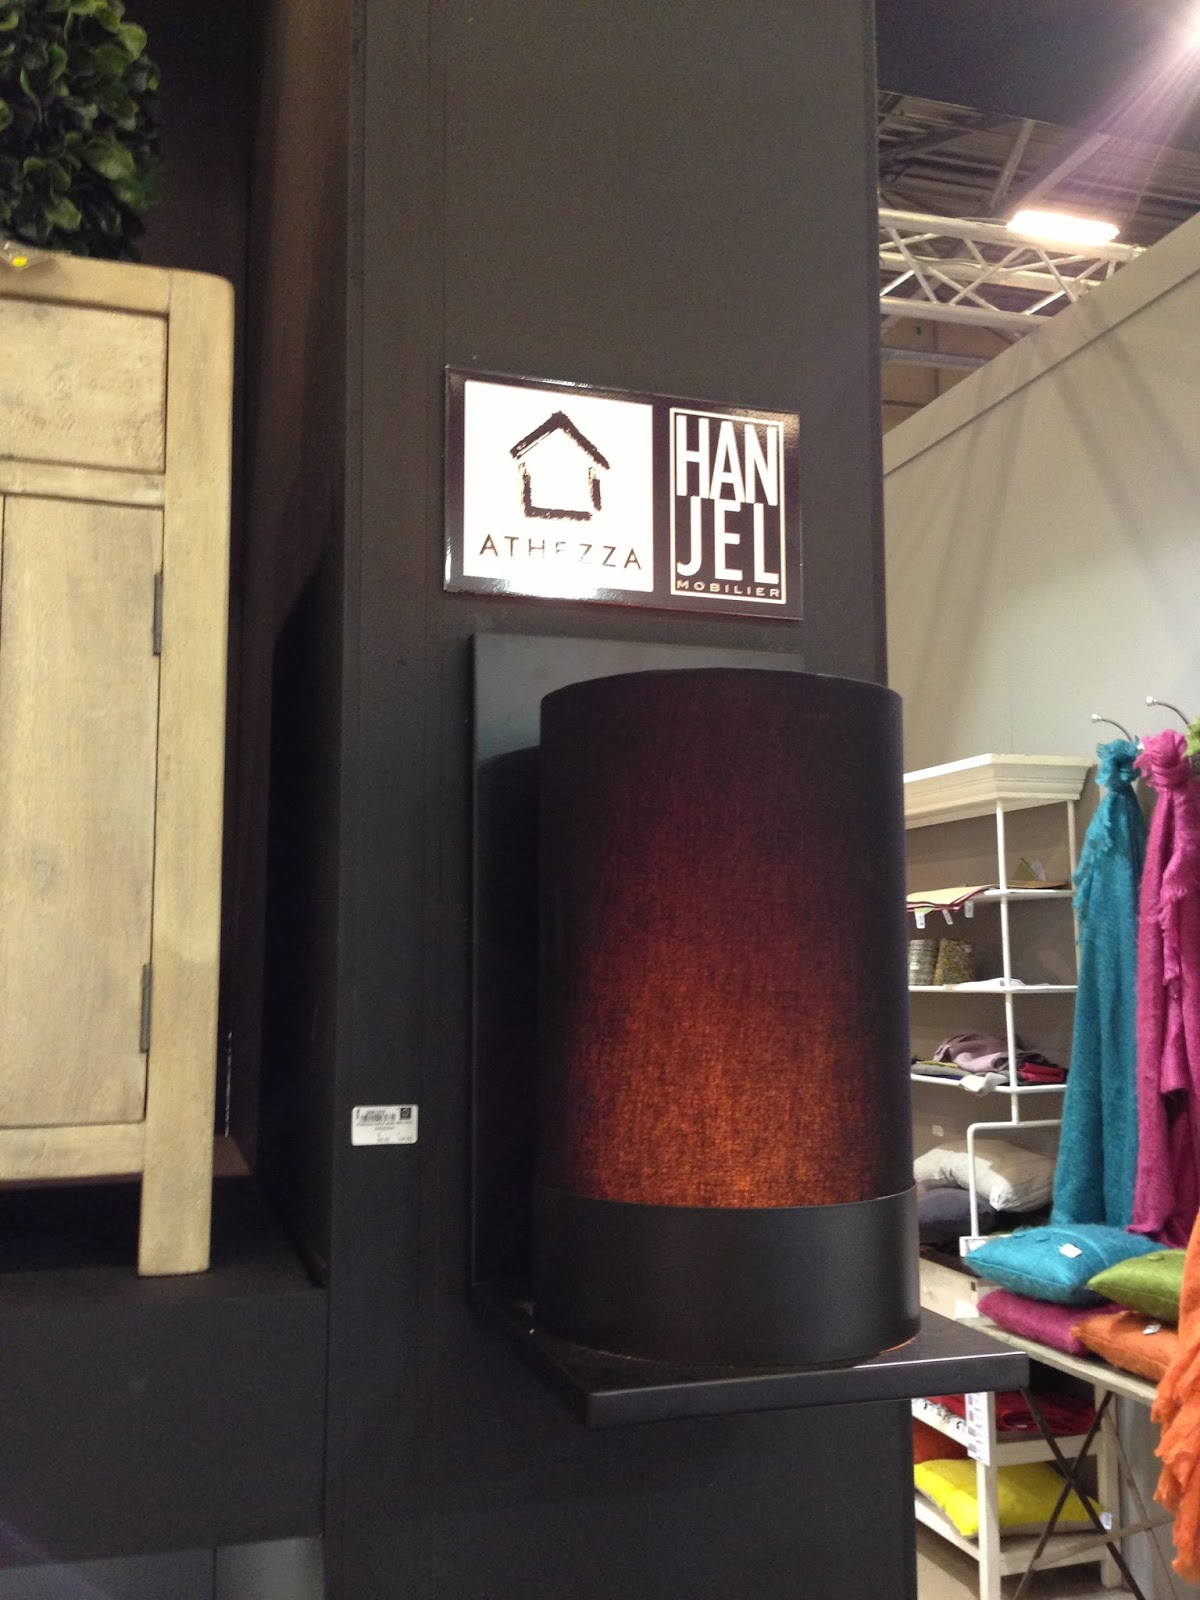 maison et objet athezza and hanjel norse white design blog. Black Bedroom Furniture Sets. Home Design Ideas